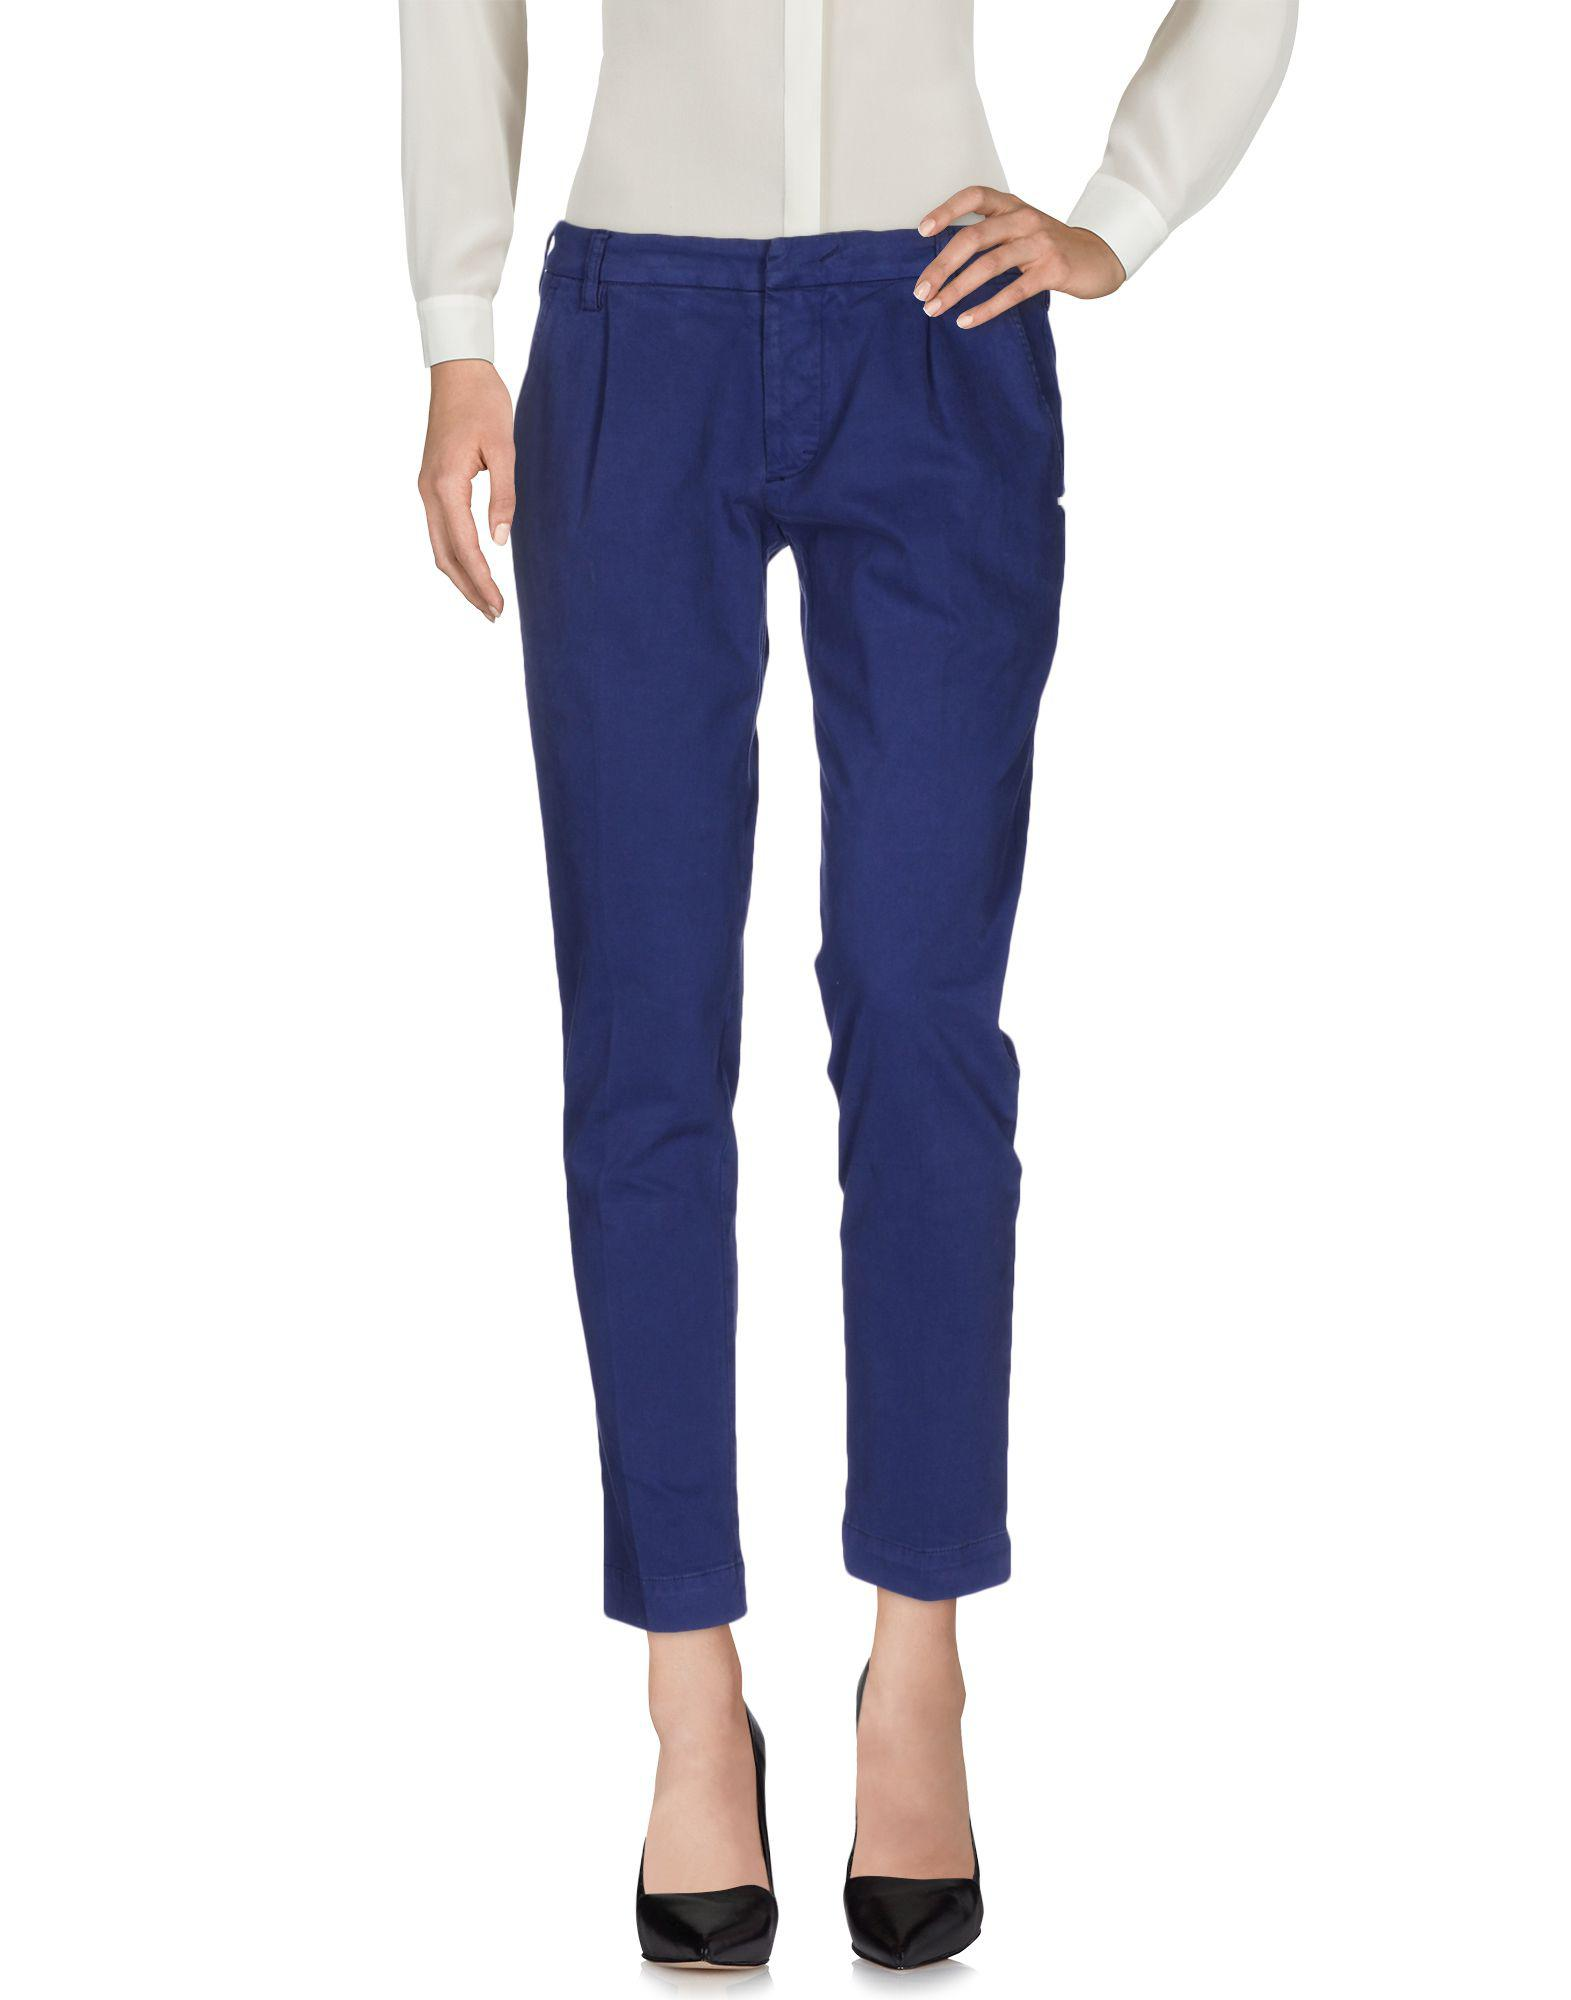 Trousers - Casual Trousers Entre Amis cxvb8wwUl7